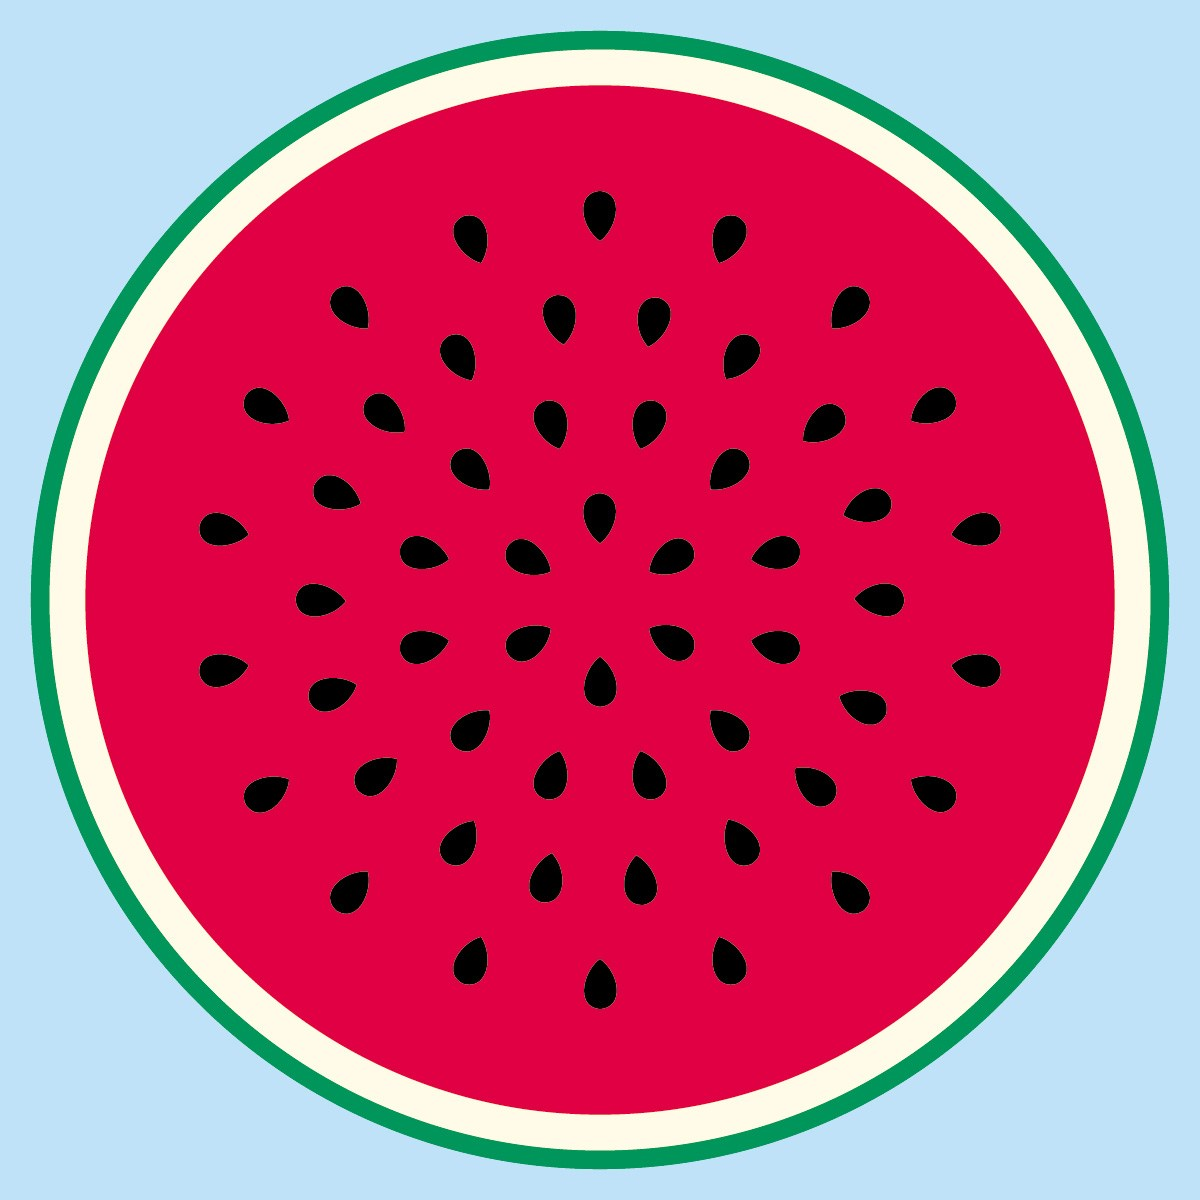 Watermelon without seeds clipart graphic transparent download Watermelon seed clipart 2 » Clipart Portal graphic transparent download